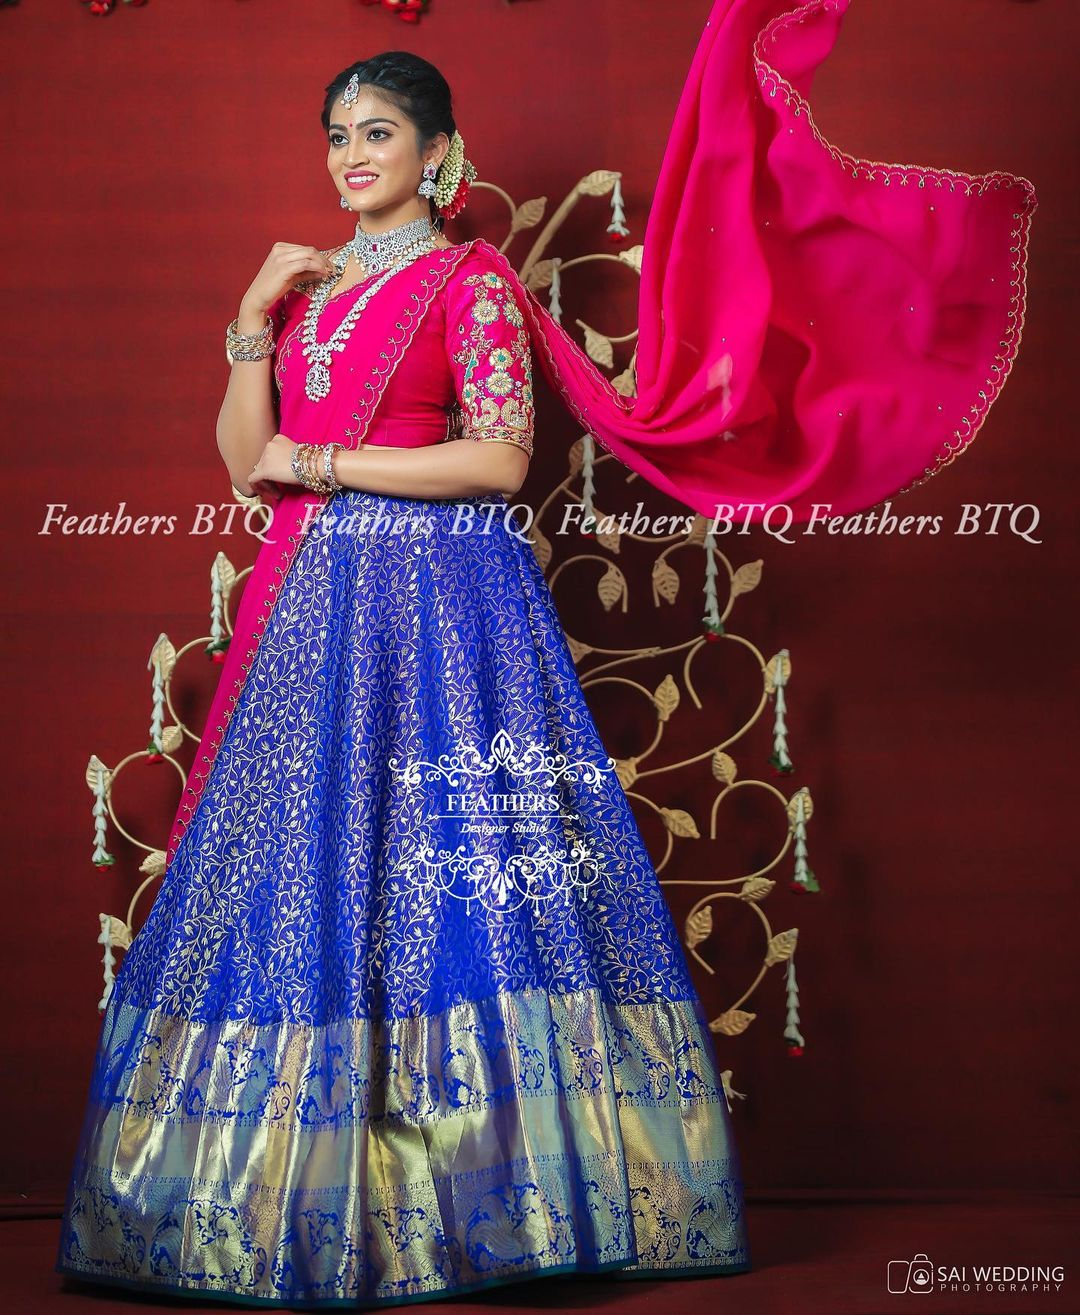 Stunning blue colour silver pattu lehenga and pink color blouse with dupatta. Blouse with floral maggam work. 2021-04-30